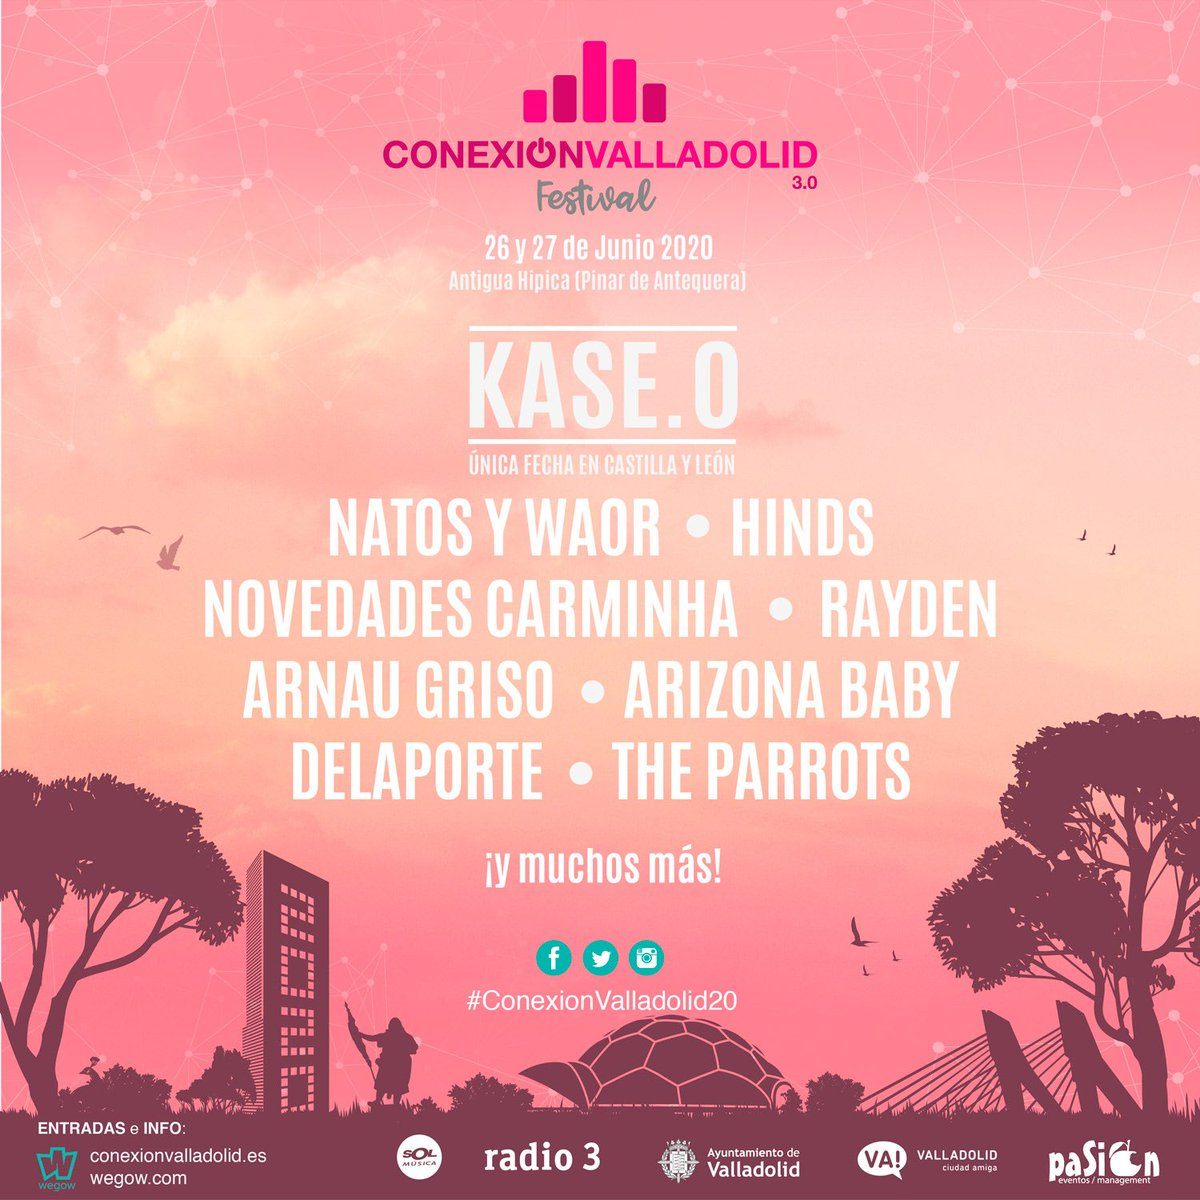 26-27/6 Antigua Hípica #Valladolid @AyuntamientoVLL @infoVLL #ConexionValladolid20 @hindsband @novcarminha @arnaugriso @theparrotsband @KaseO_real @NatosyWaor @soyRayden @thearizonababy @Delaportemusic y + http://ow.ly/Sr0r50xxFFT  #TuHostalDesde1978 #VallAgendapic.twitter.com/3dYUEAClTl